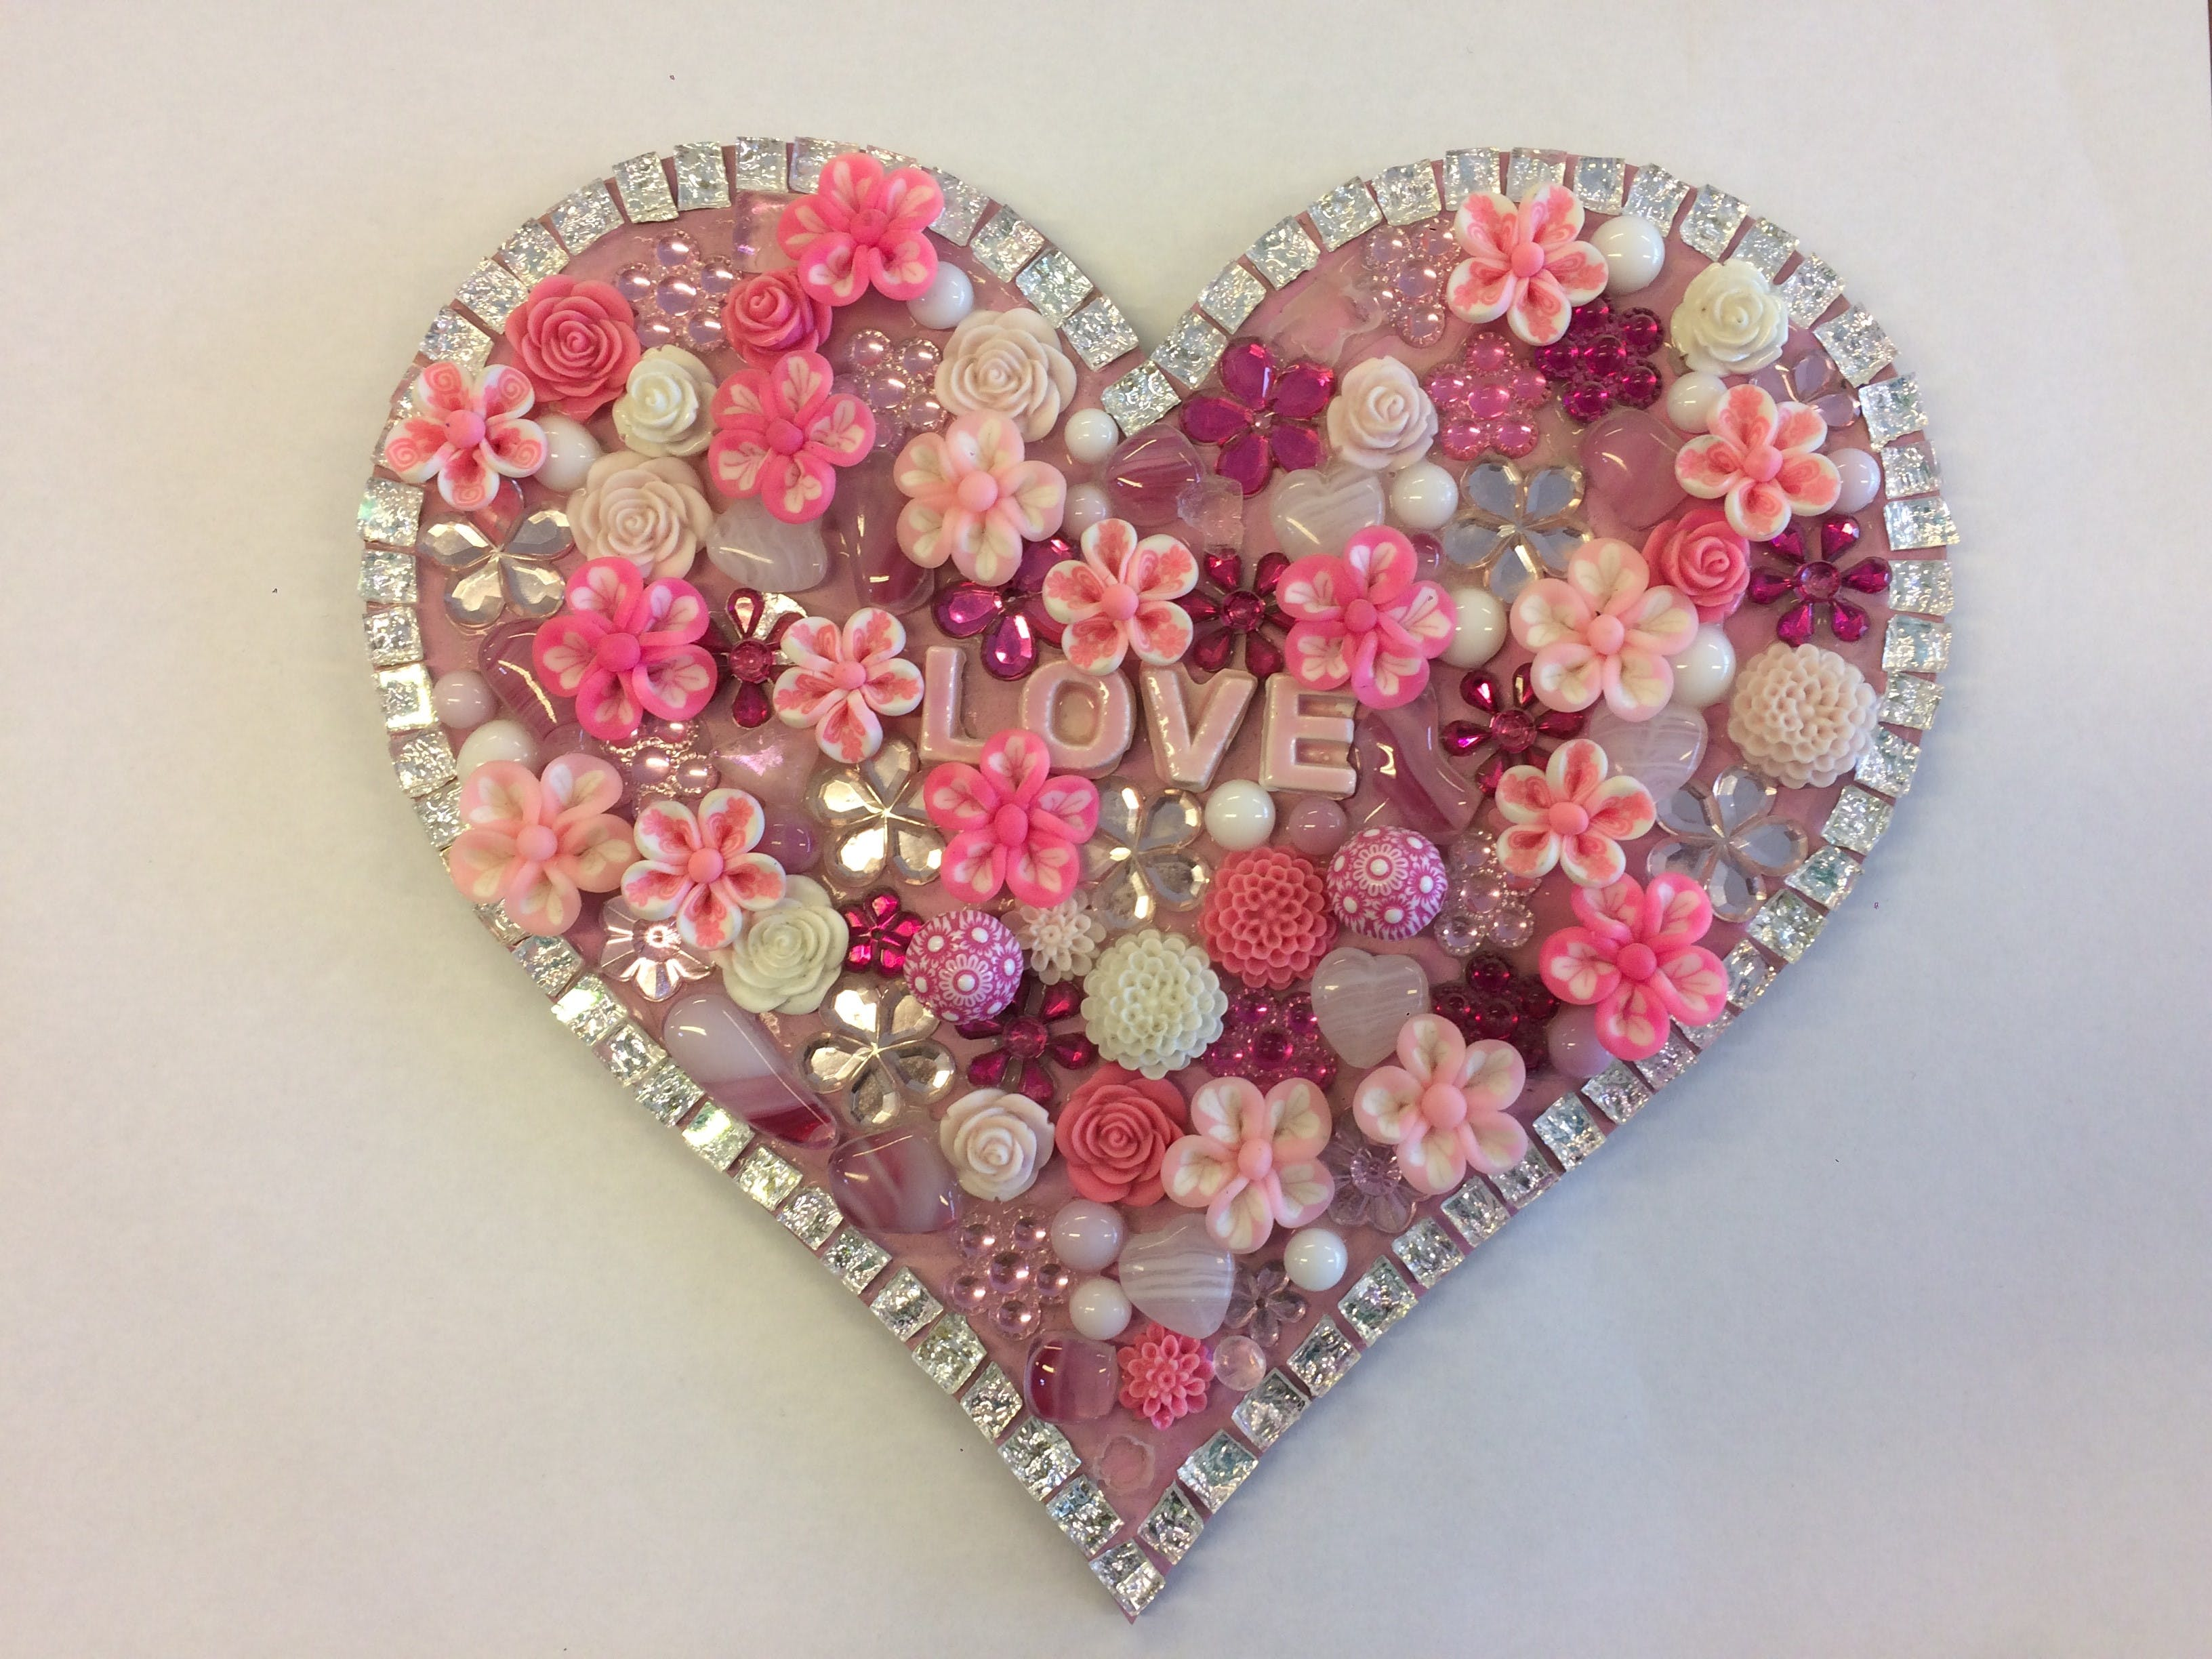 Flowers and Bling Mosaic Class for Kids - Accommodation Kalgoorlie